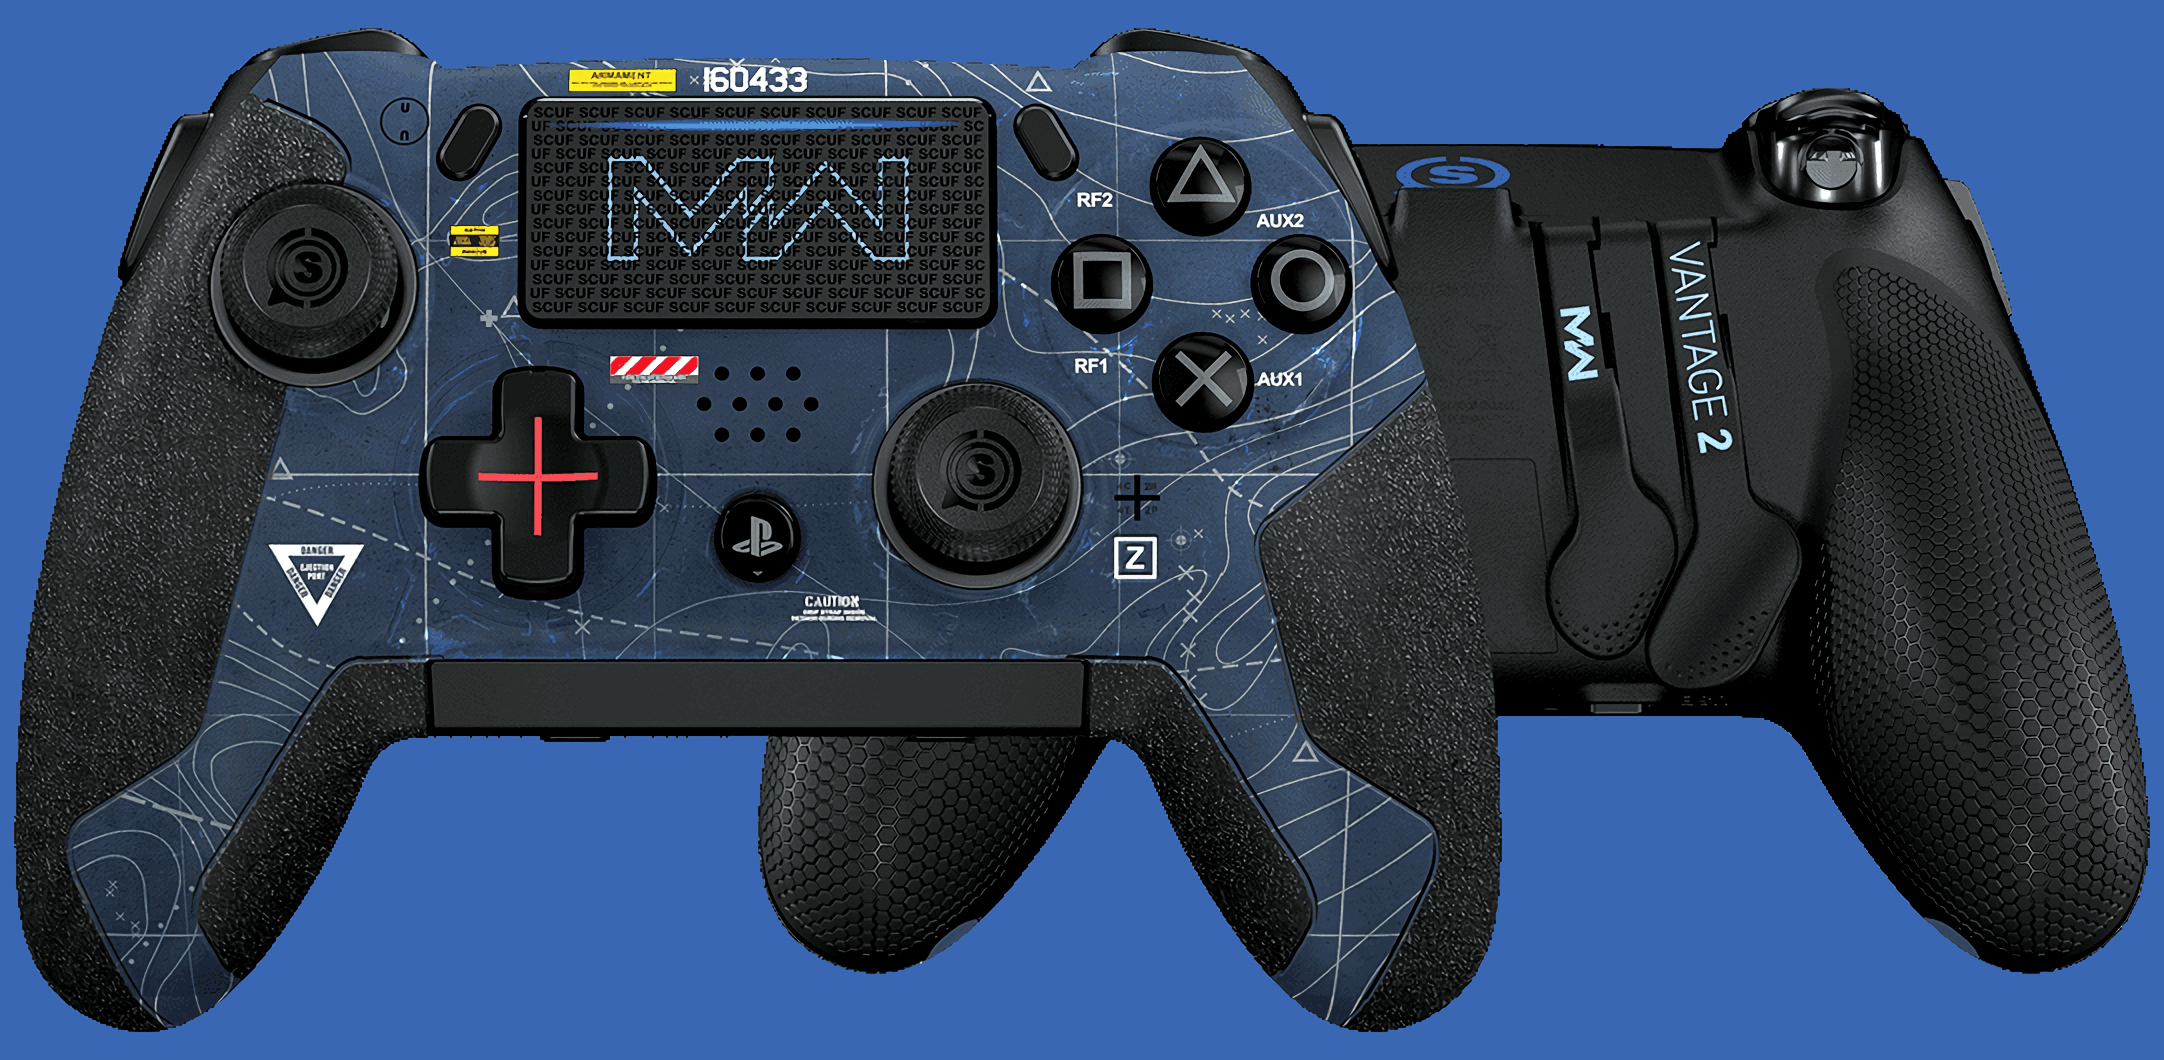 Scuf redesigned the Vantage PlayStation 4 controller for an October release